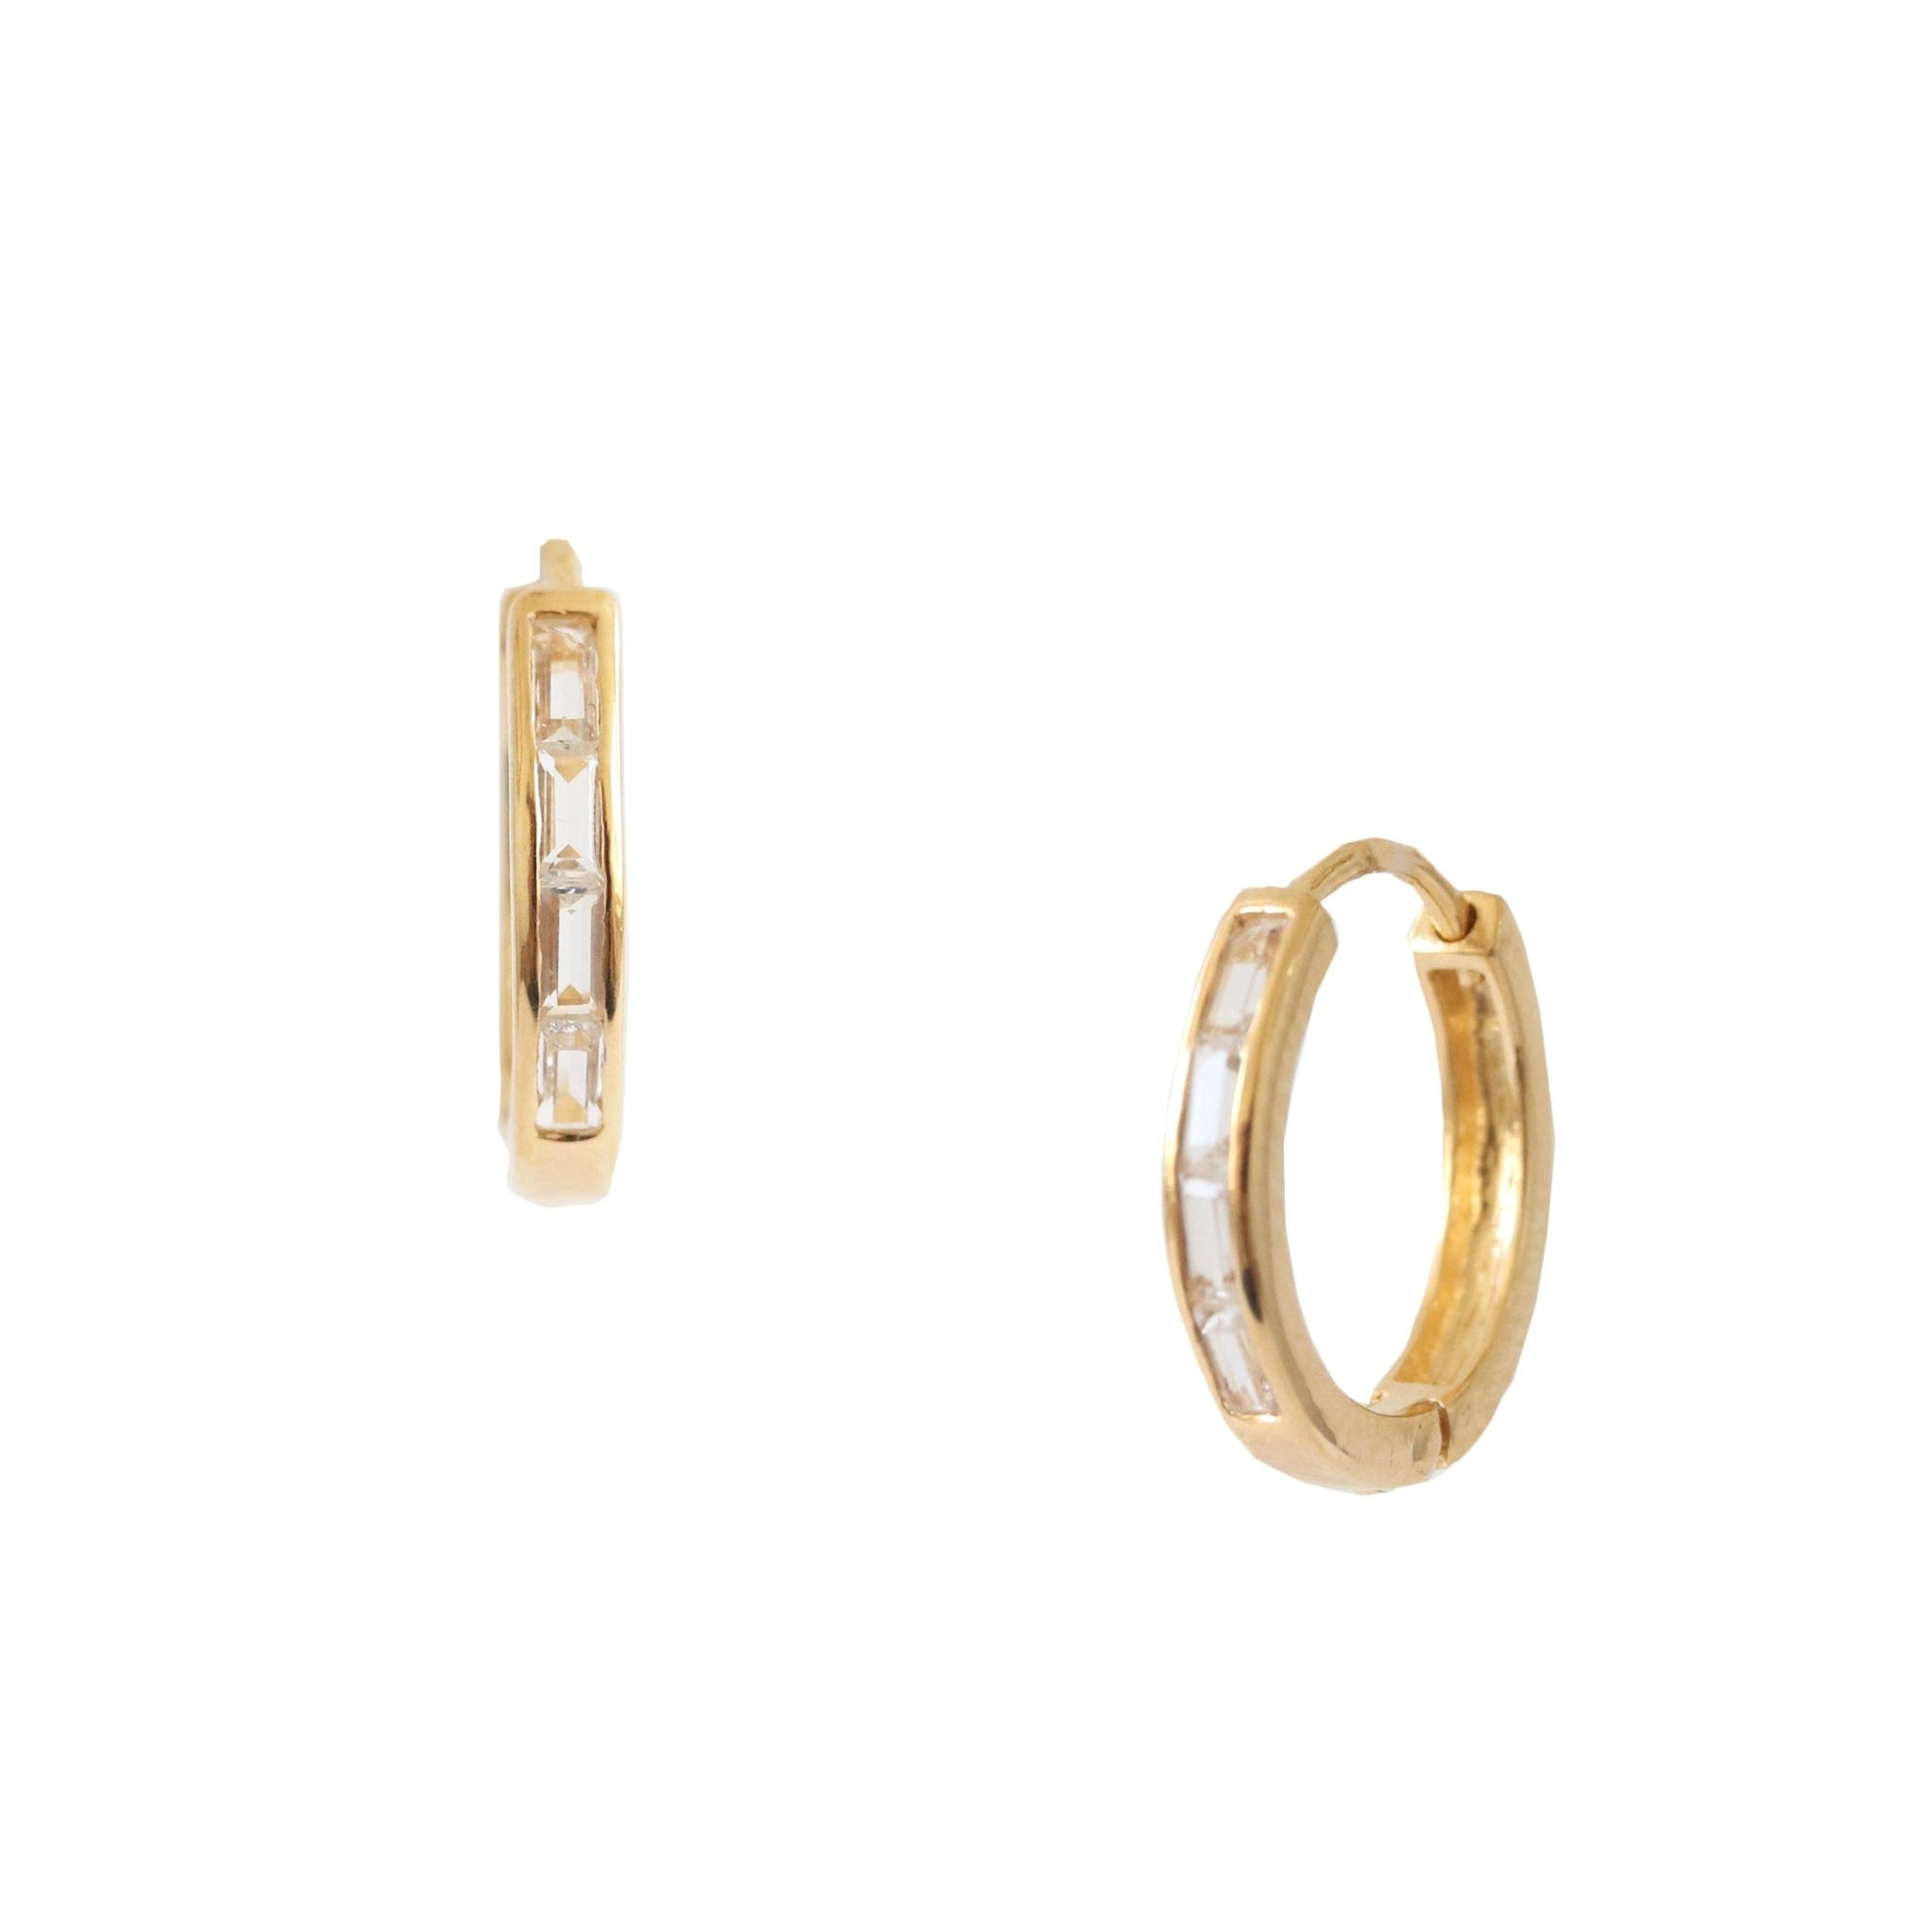 Loyal Channel Huggie Hoops - White Topaz & Gold - SO PRETTY CARA COTTER